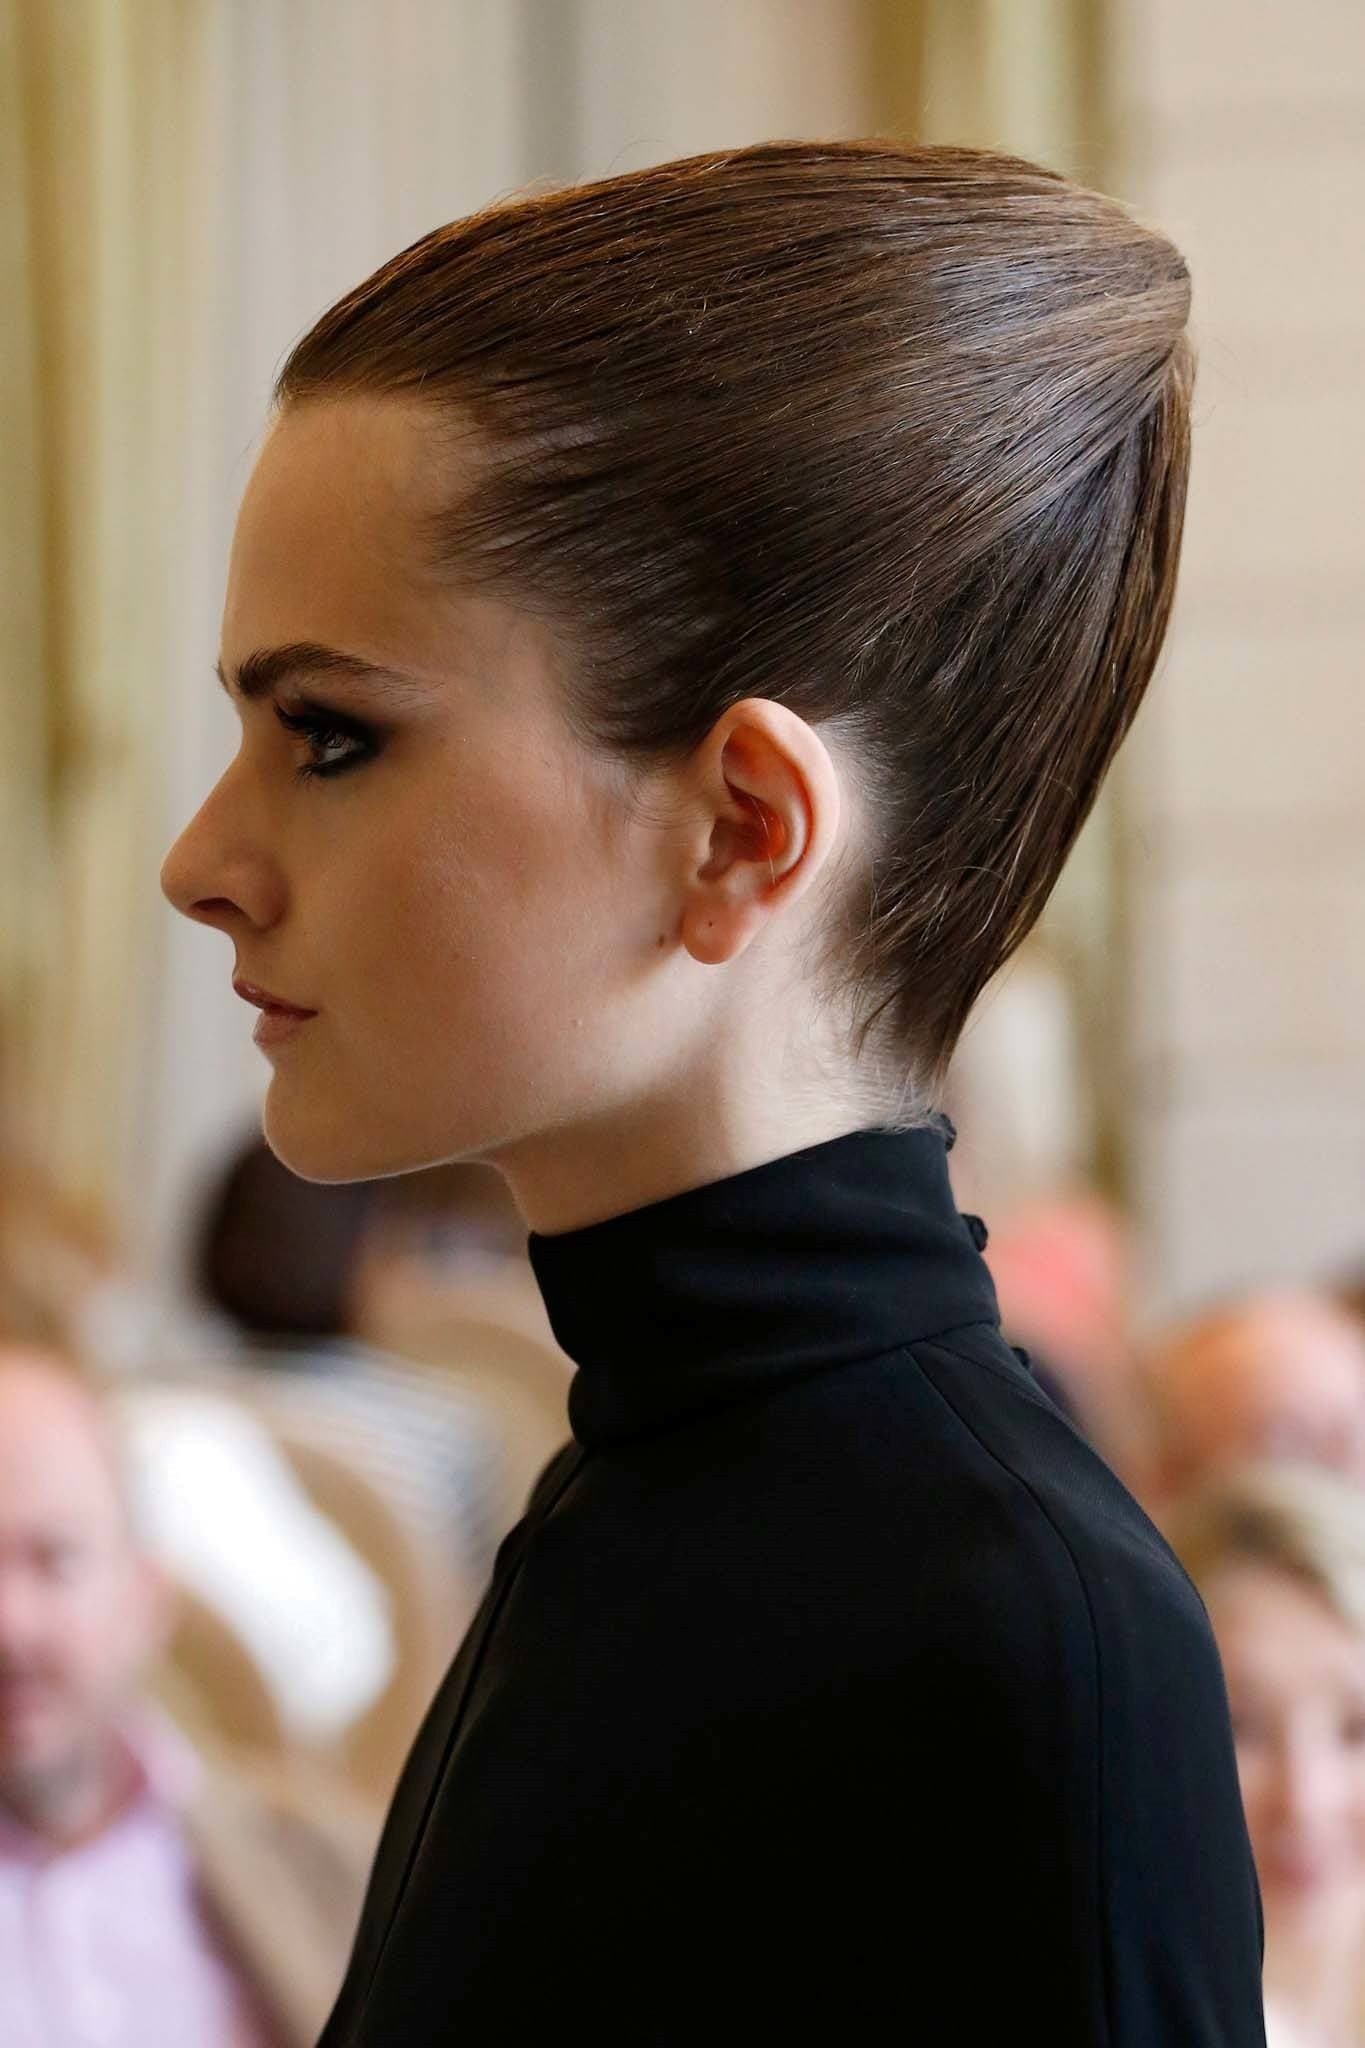 Paris fashion week haute couture model with triangular hairstyle